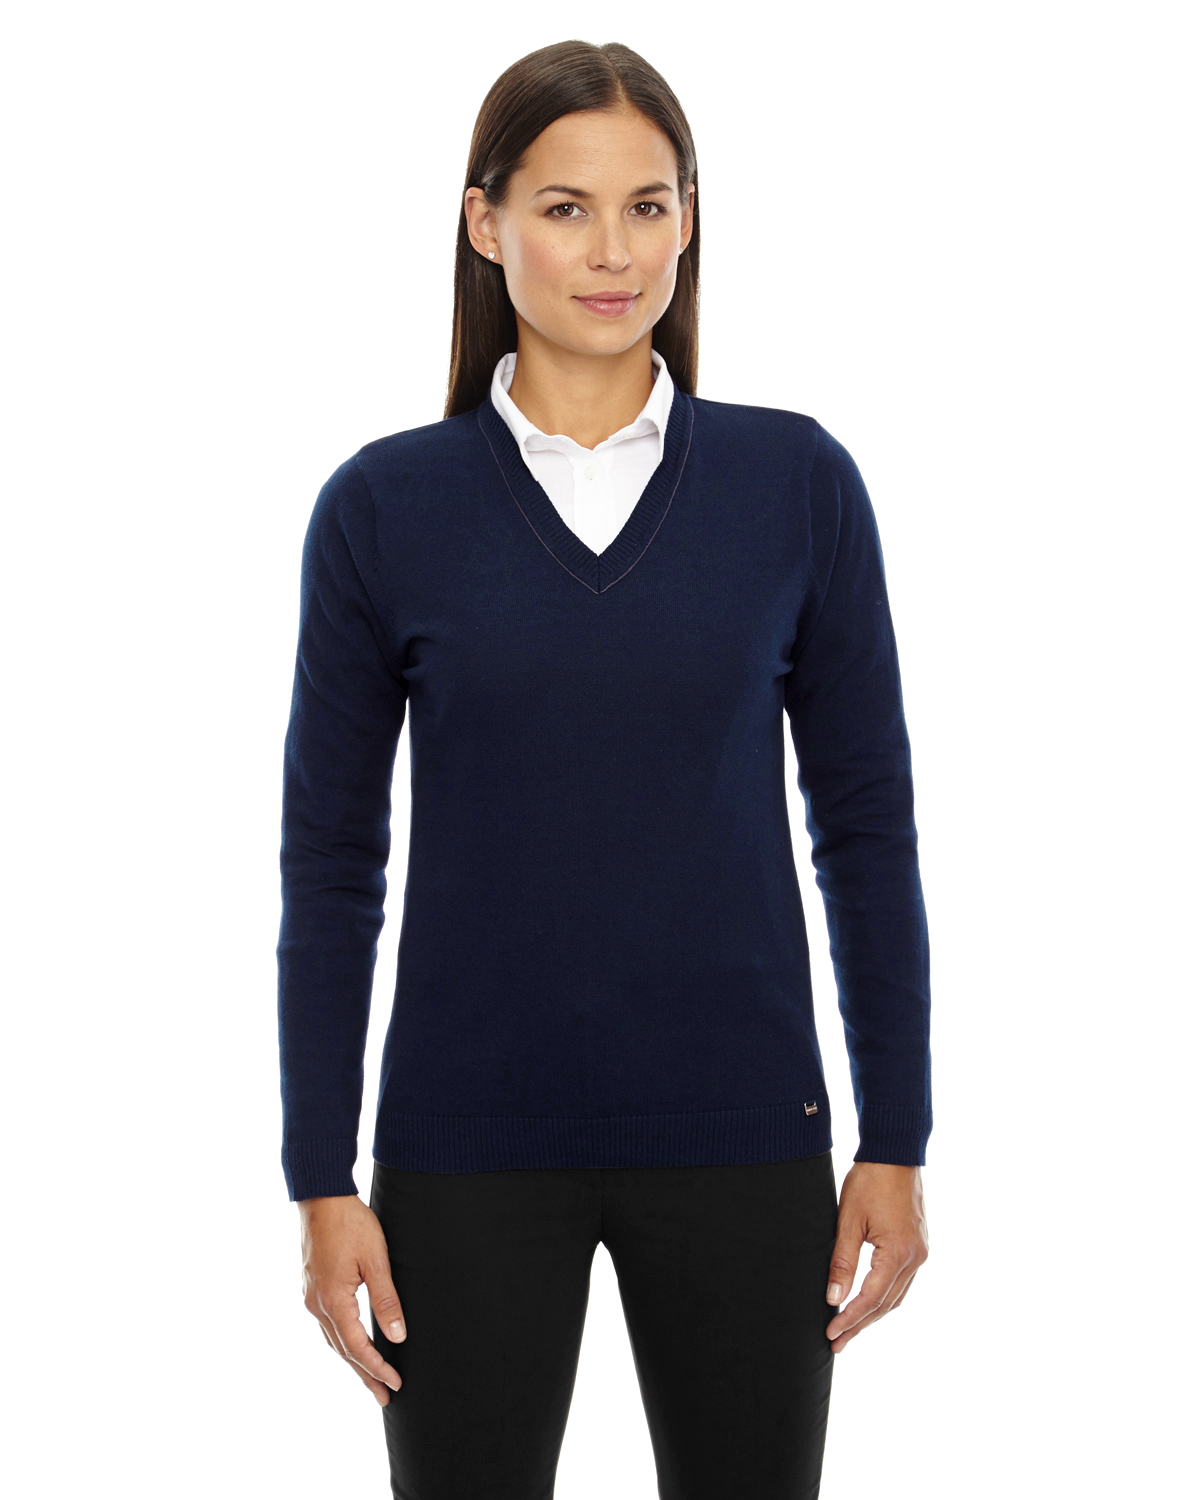 Ash City - 71010, Ladies' Merton Soft Touch V-Neck Sweater, Embroidery, Screen Printing - Logo Masters International